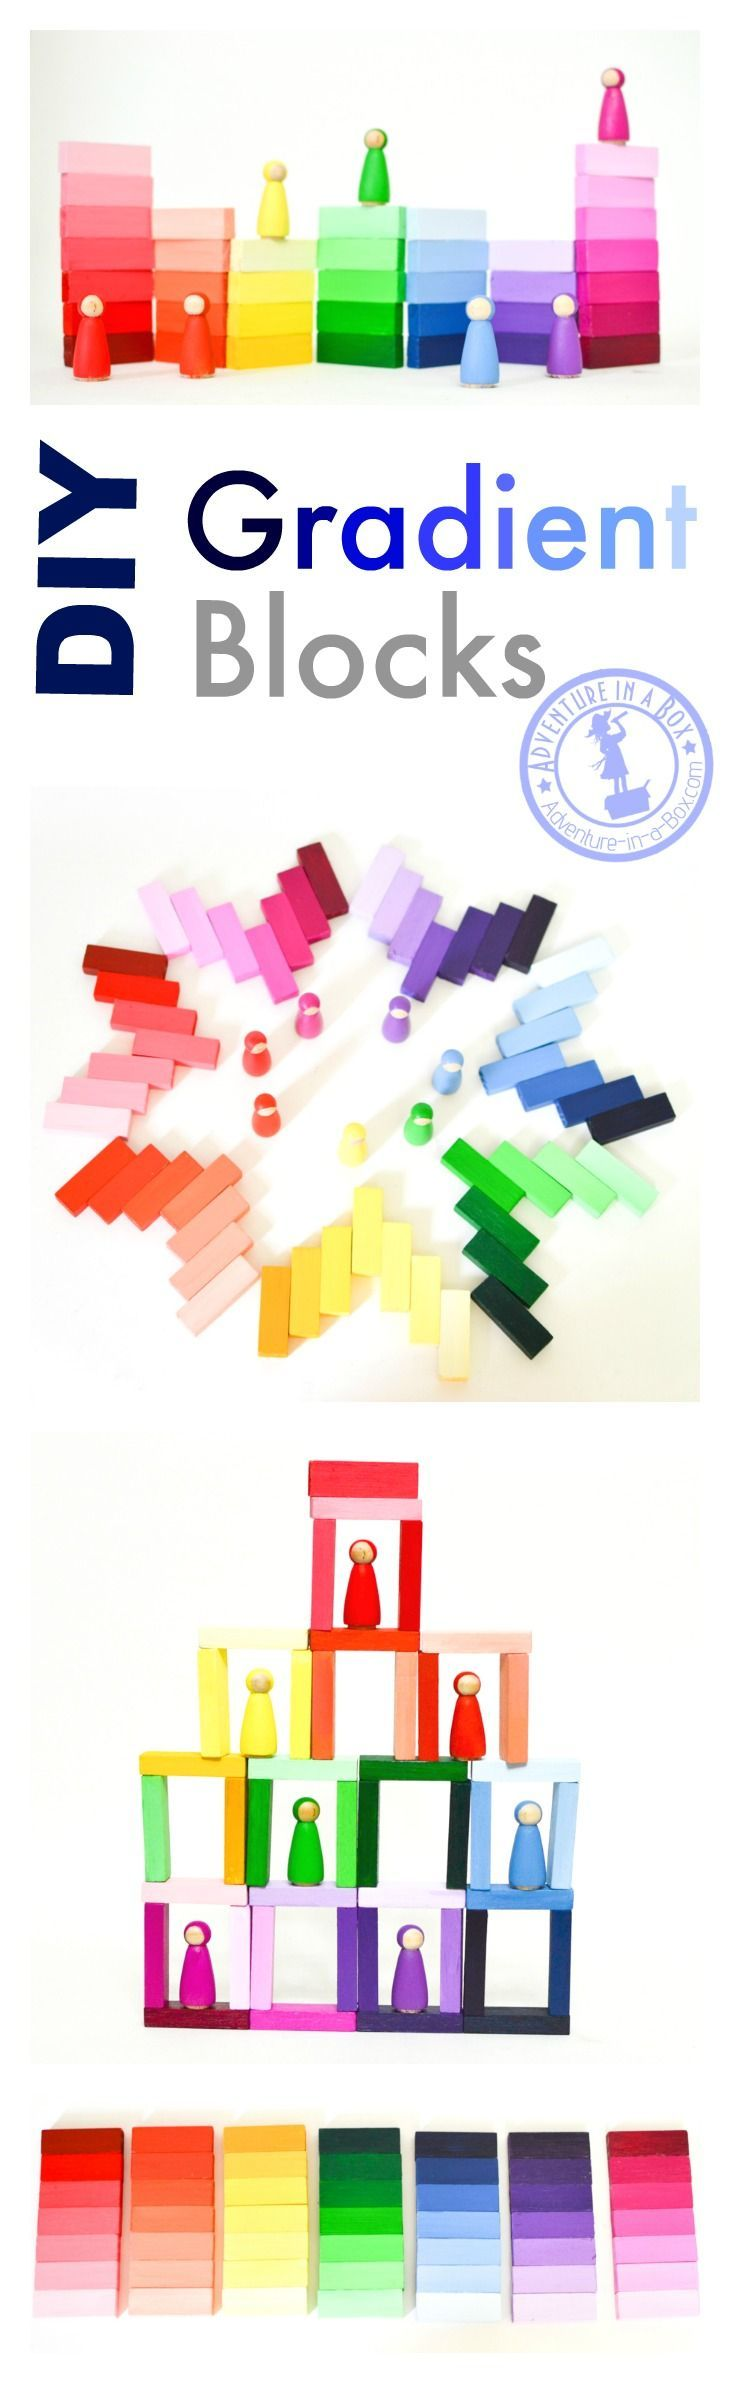 DIY Handmade Wooden Gradient Blocks: Inspired by Montessori colour tablets, these colourful blocks are very easy to make and fun for kids to play with!